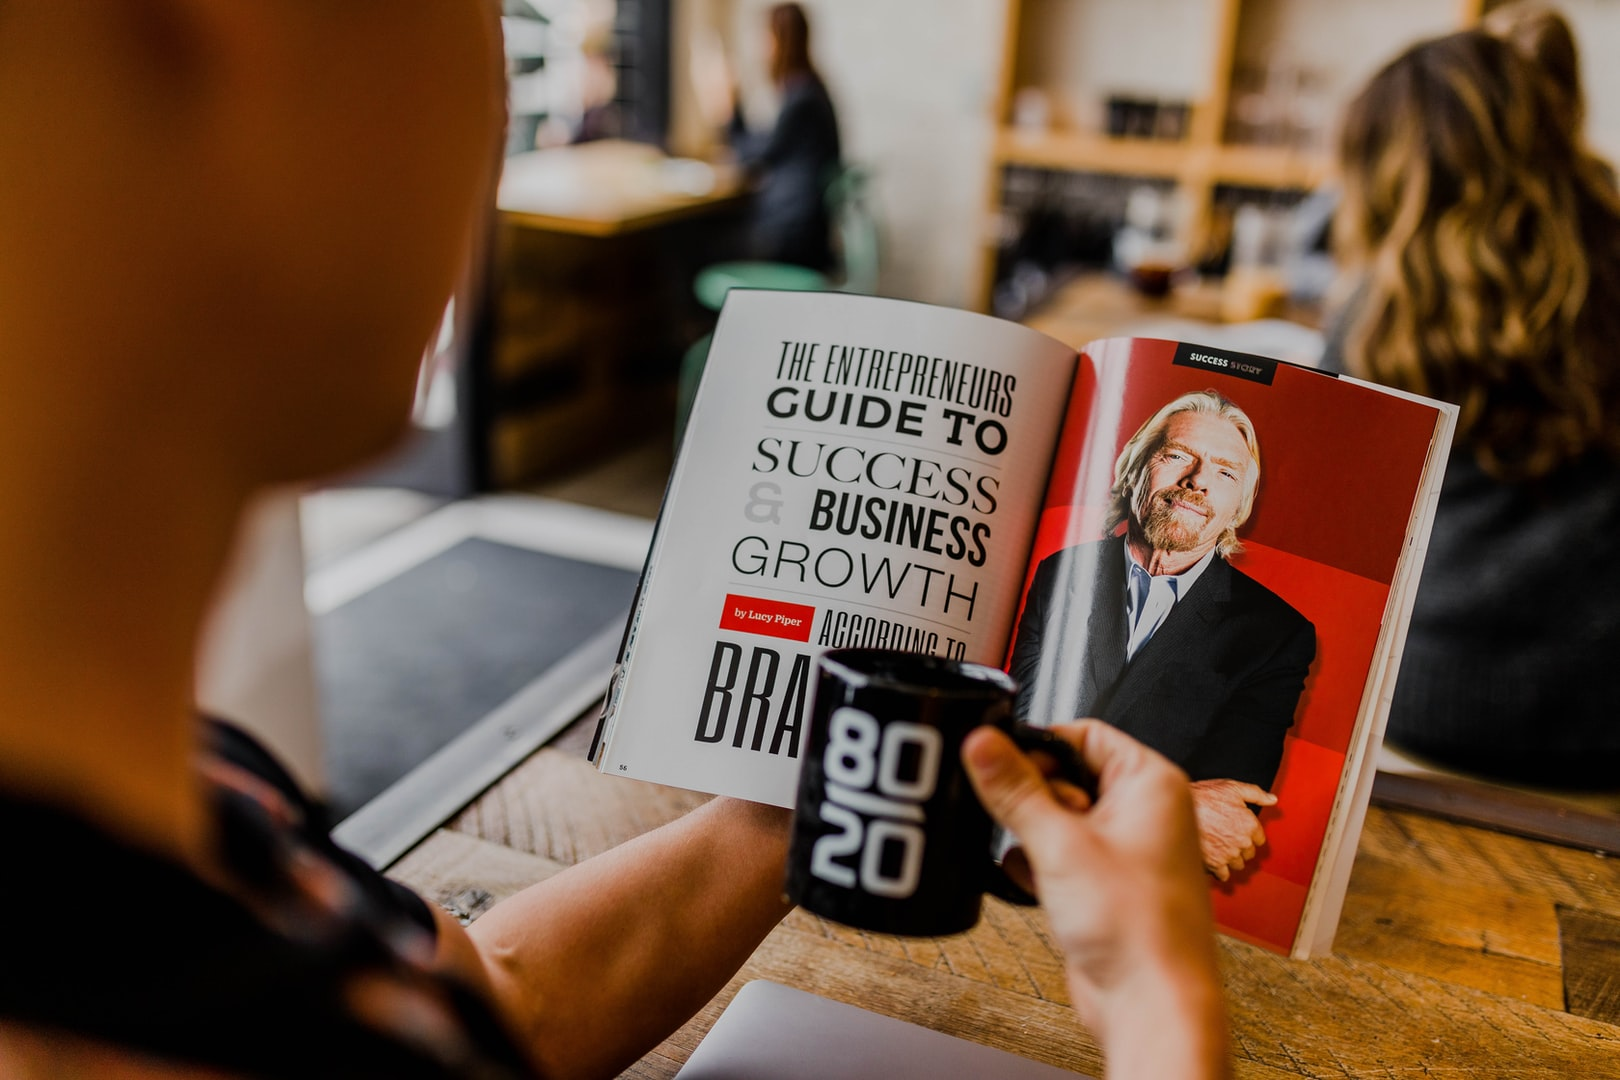 A photo of a book on business success with Richard Branson's photo